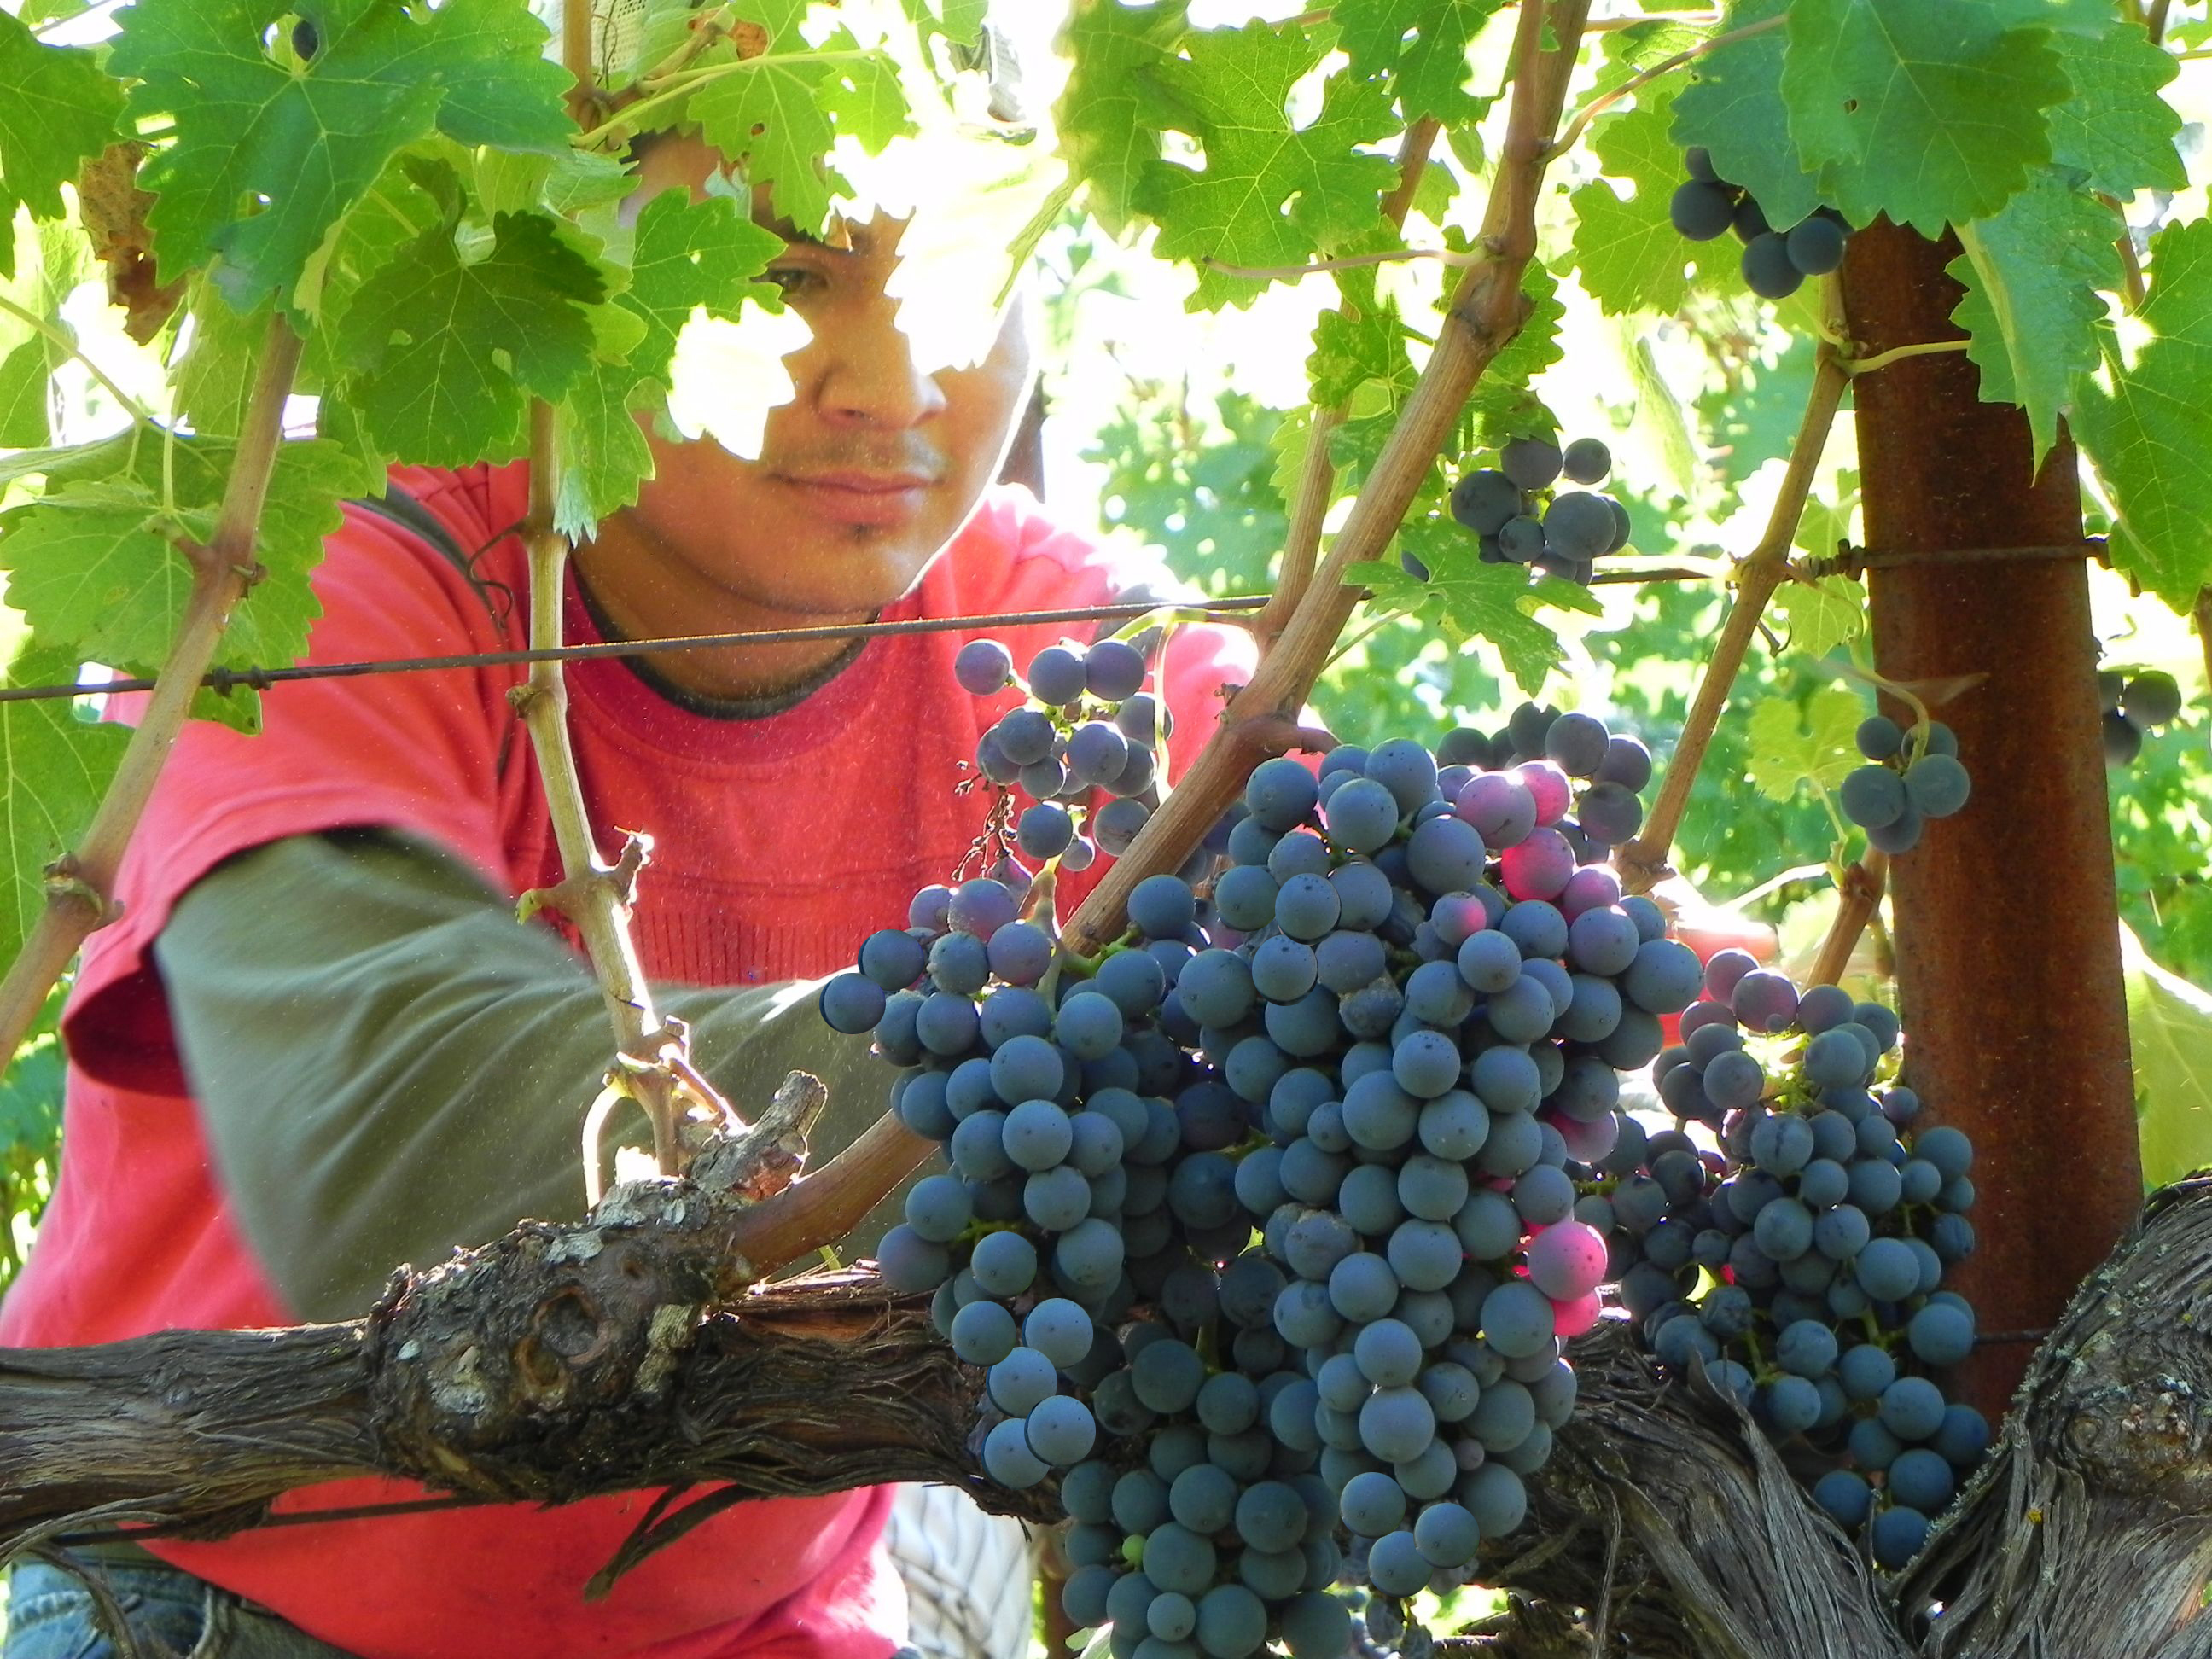 picking-grapes.jpg